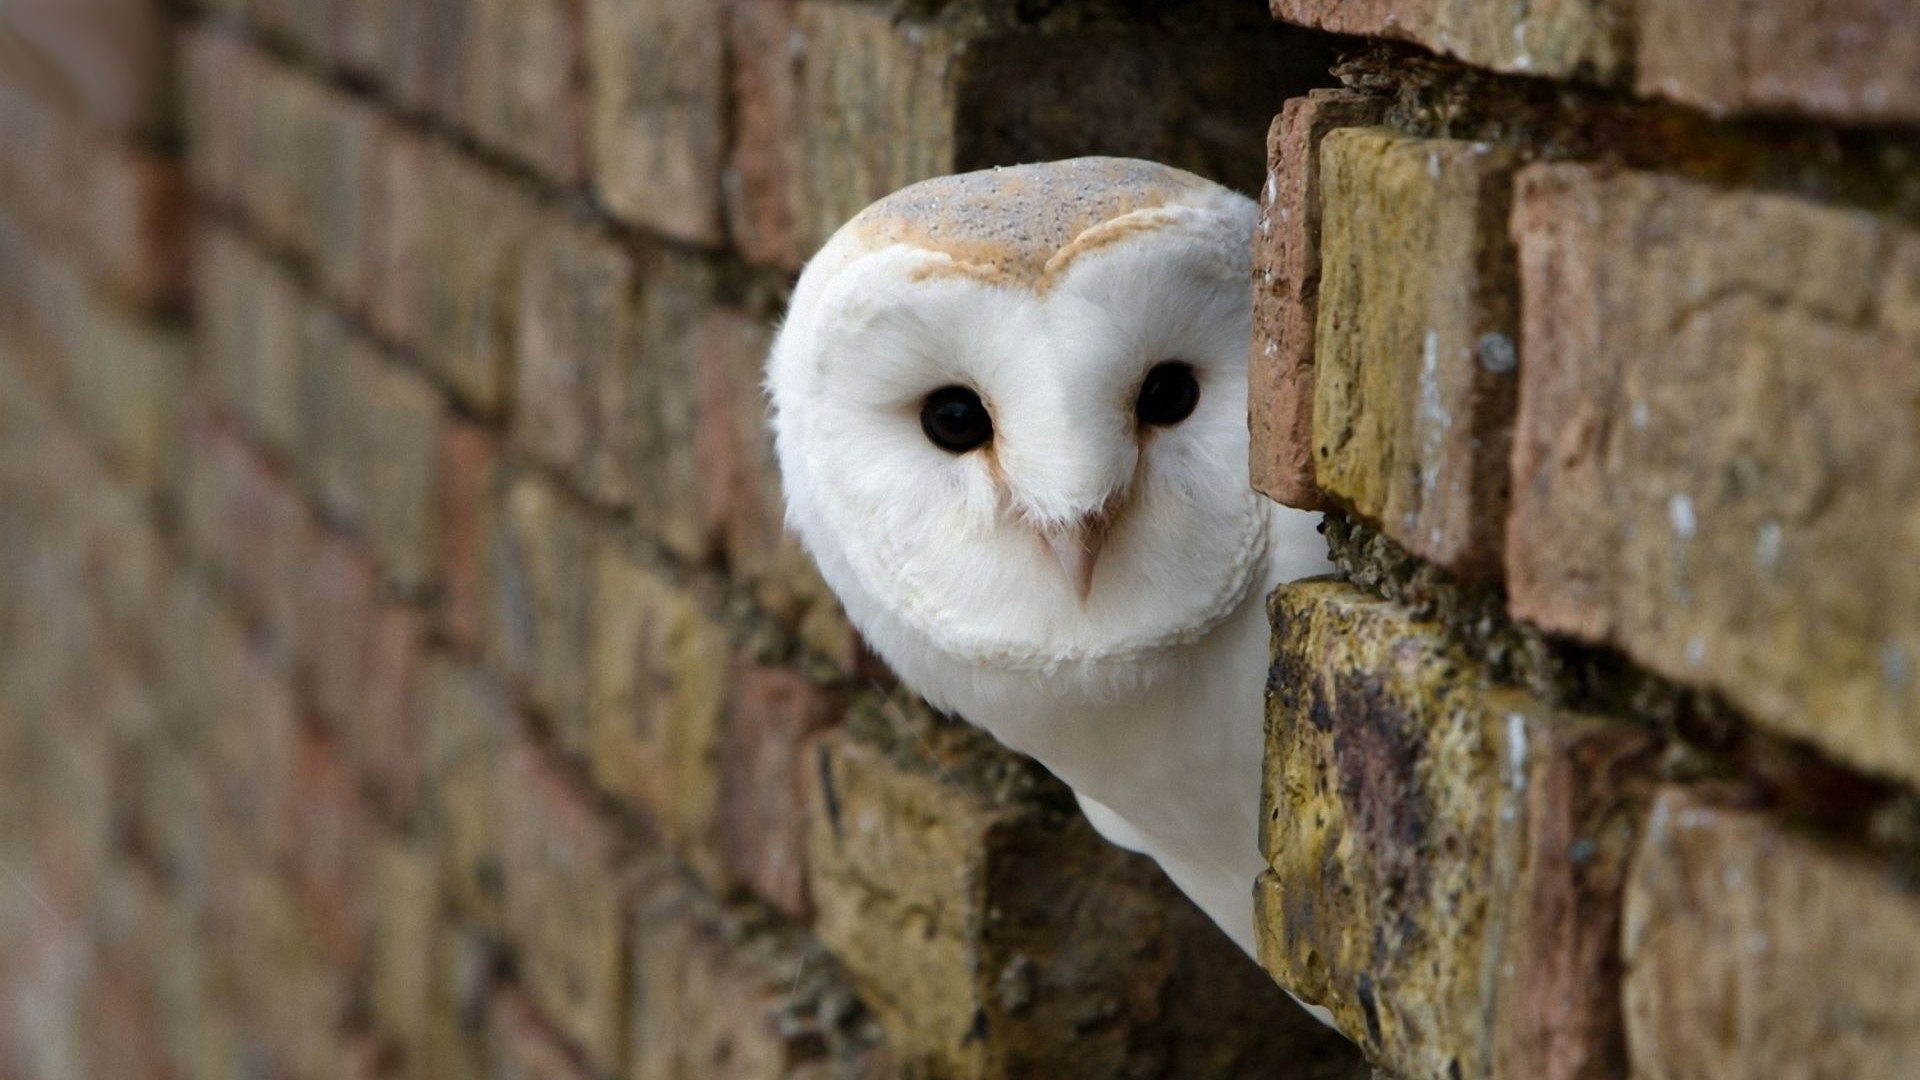 full-hd-owl-wallpaper-1080p-download | wallpaper.wiki